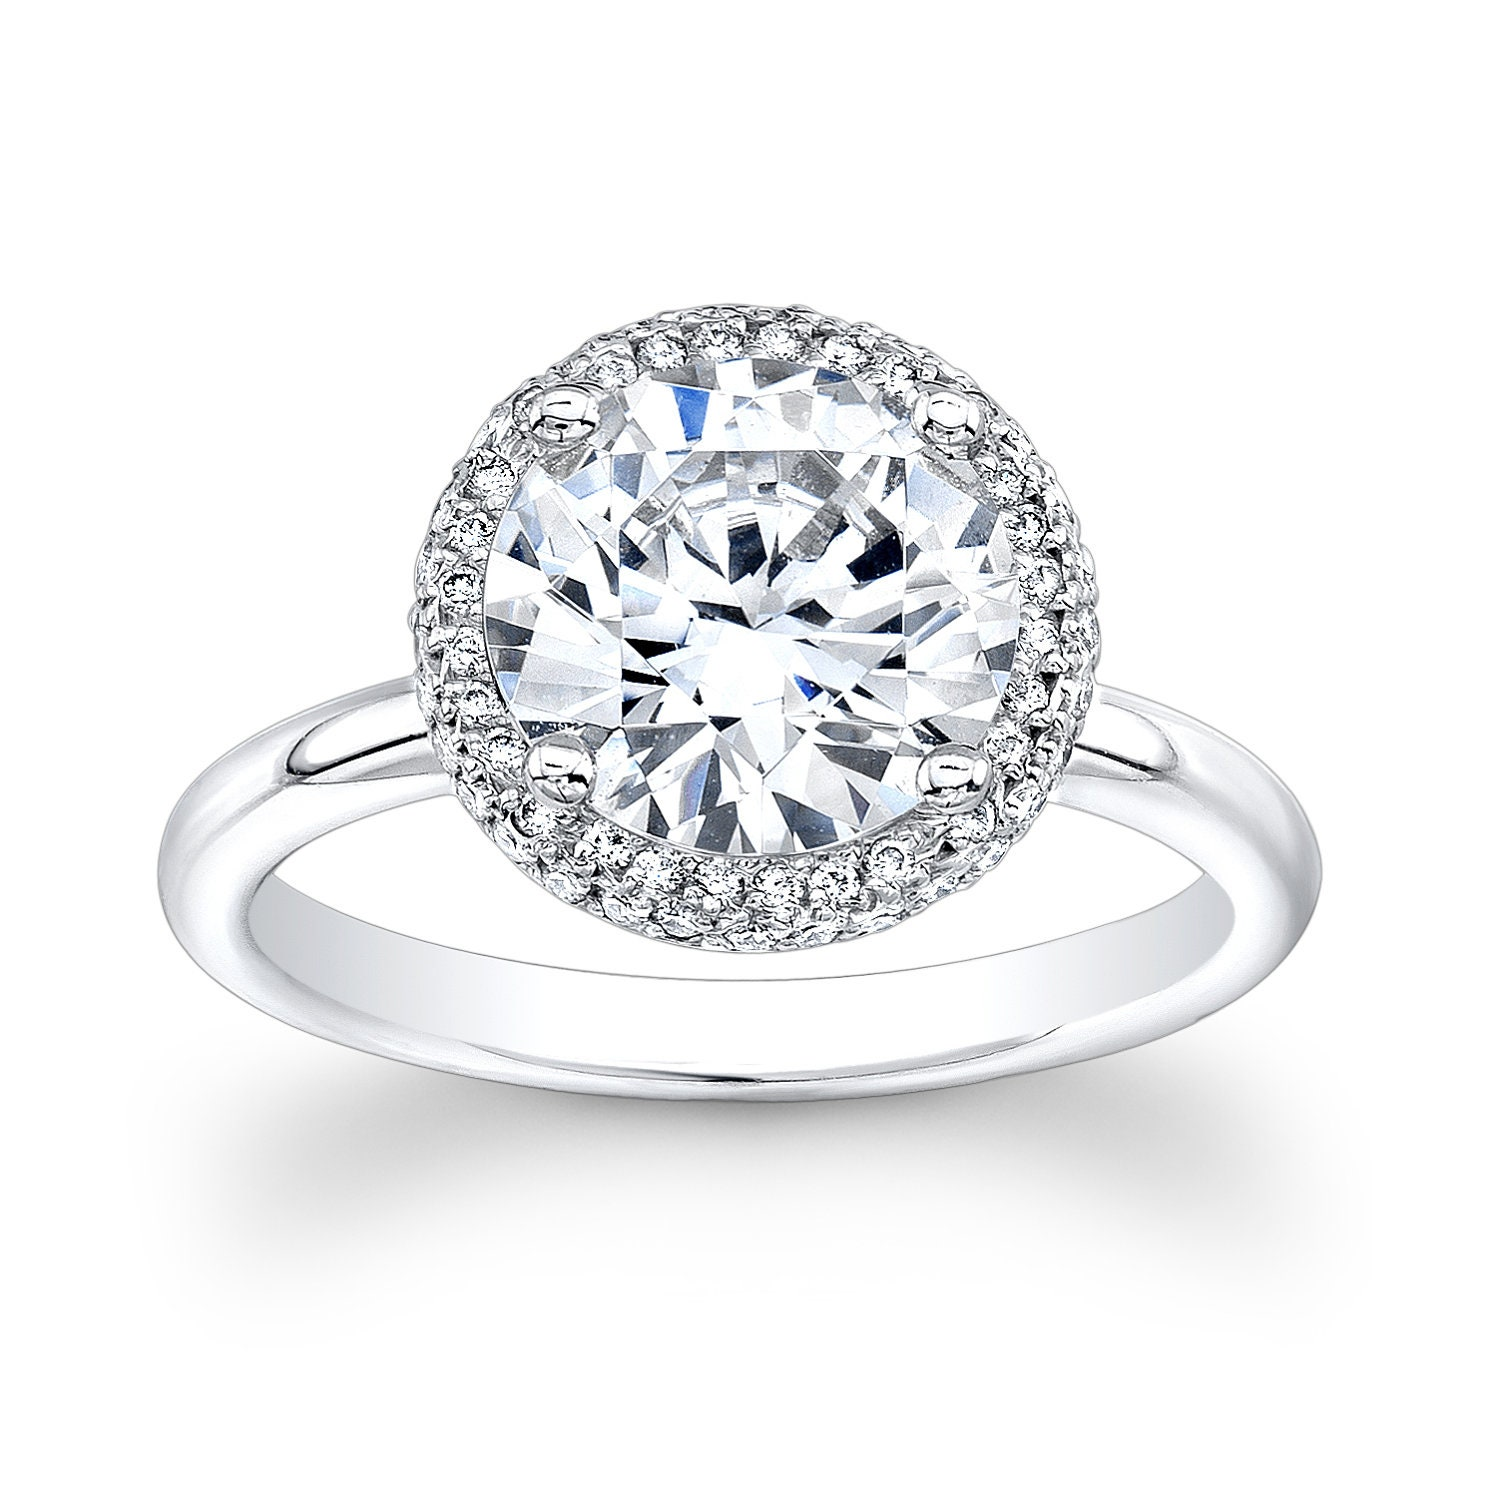 rings ring white engagement with diamond in pave and shank gold halo bezel round plain flat